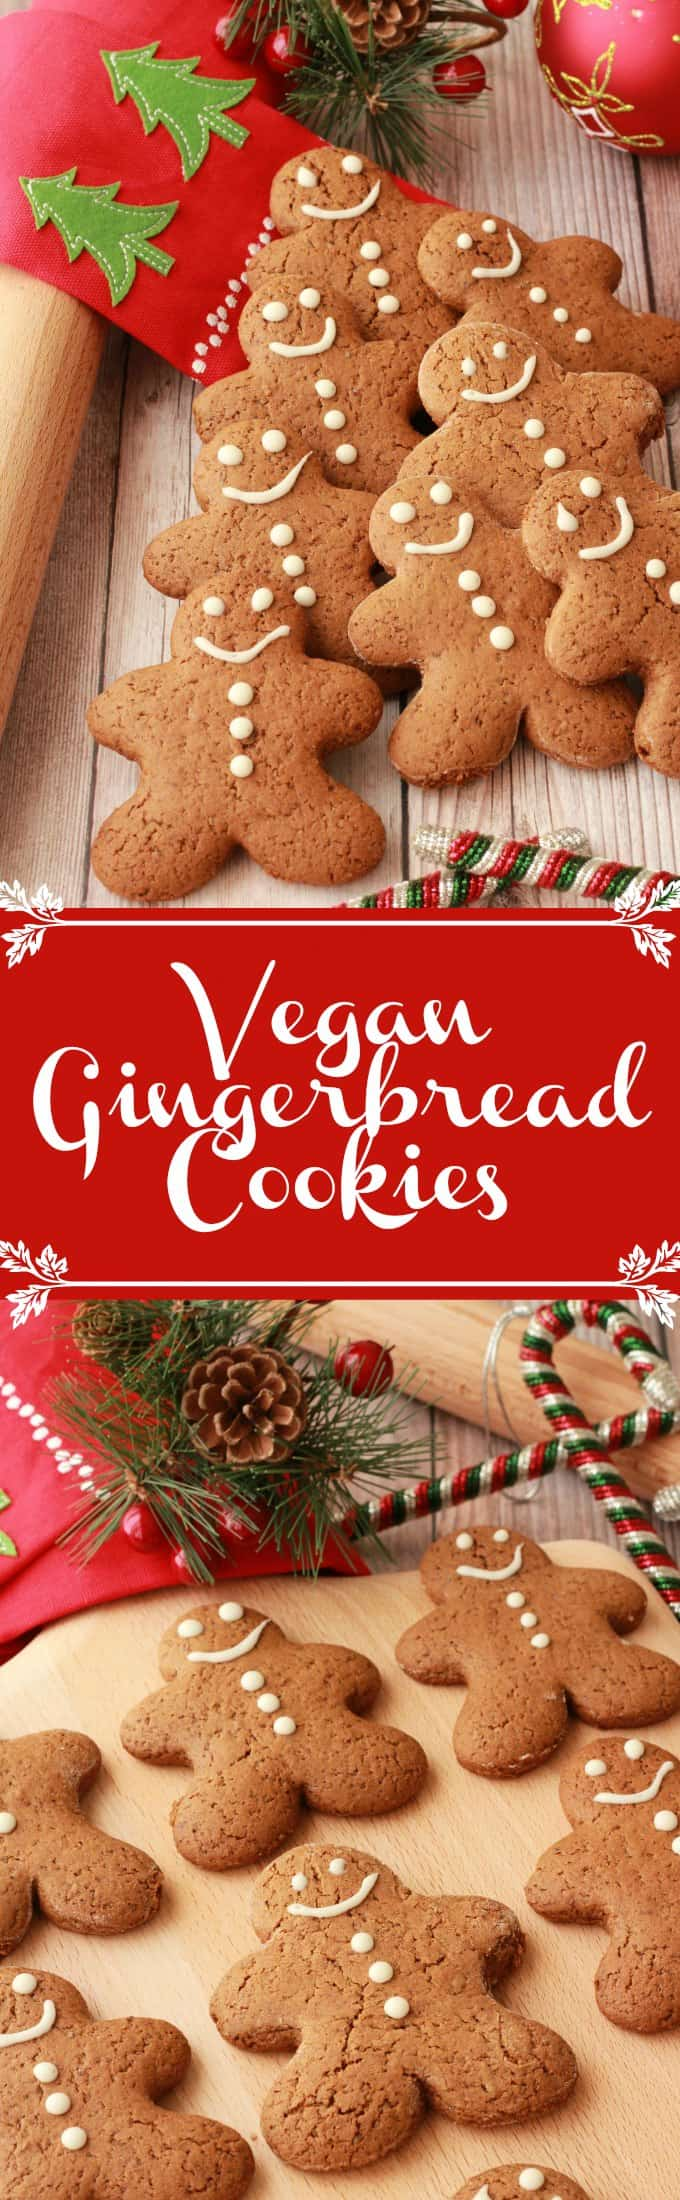 Festive and fun vegan gingerbread cookies. These gingerbread men are crisp on the outside, soft on the inside and packed with ginger and brown sugar flavor. | lovingitvegan.com